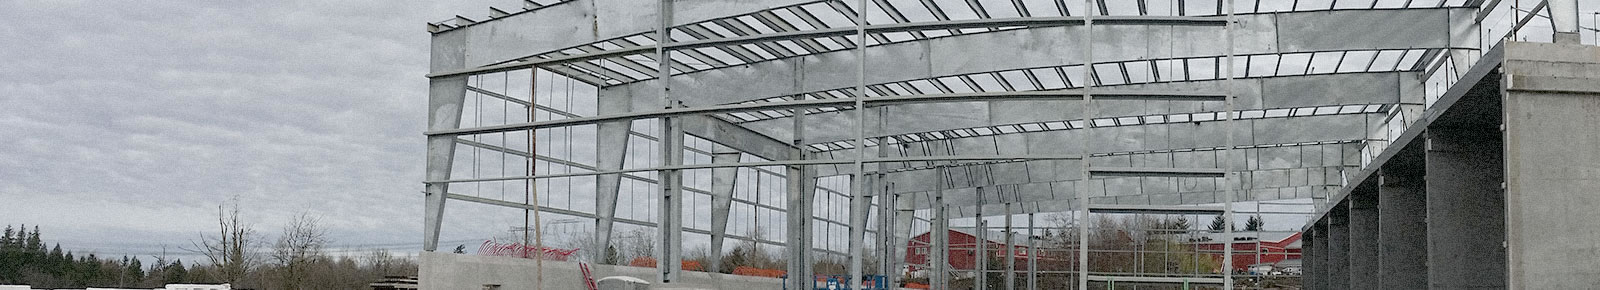 Pre-Engineered Building Industry - Ferro Building Systems LTD